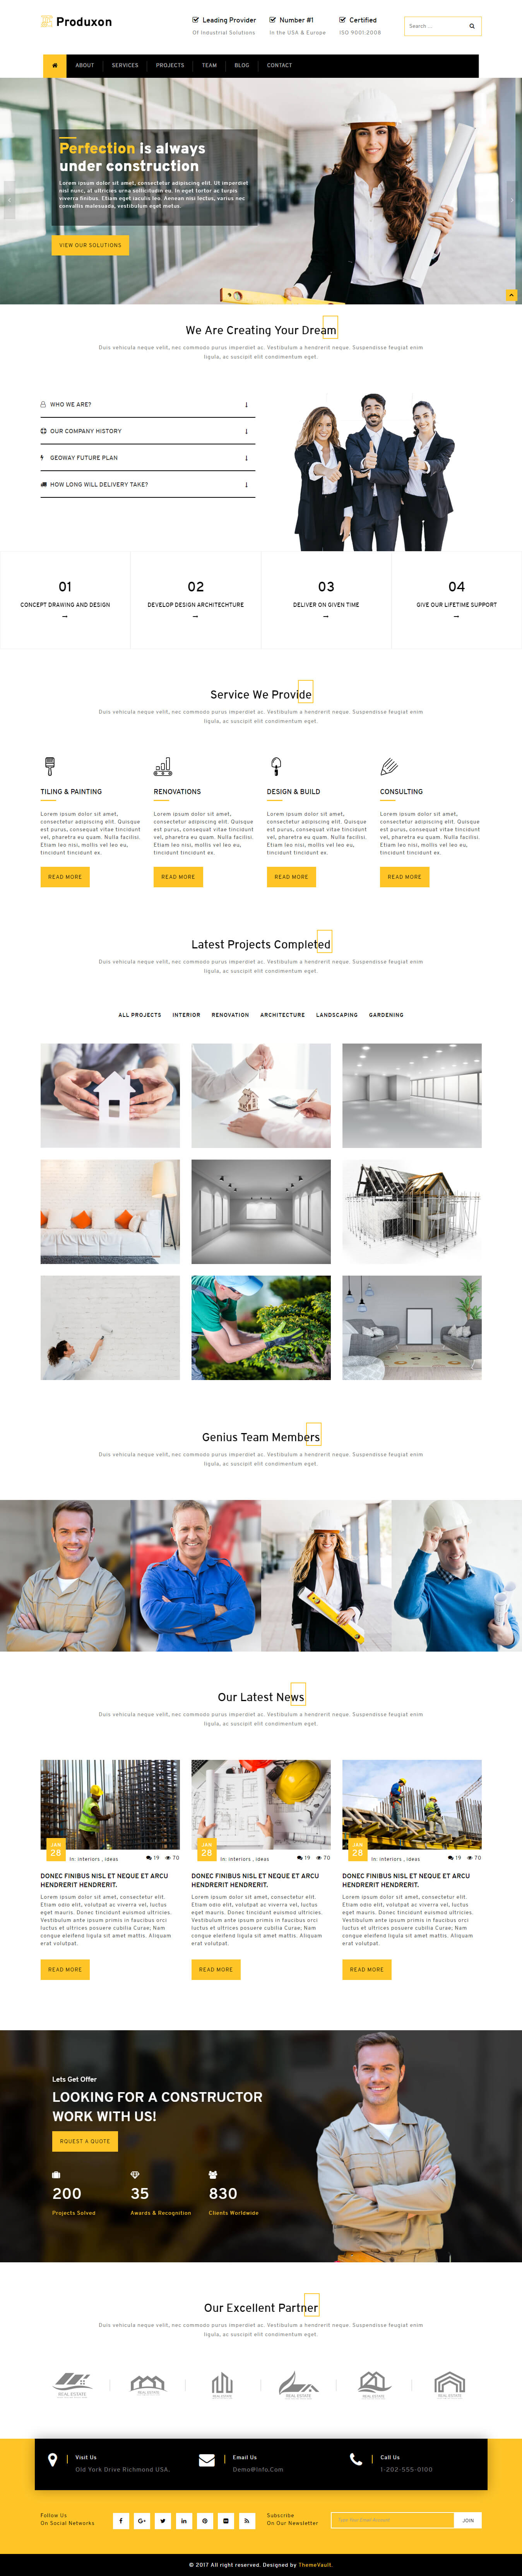 Produxon - Free HTML5 Manufacturing Website Templates